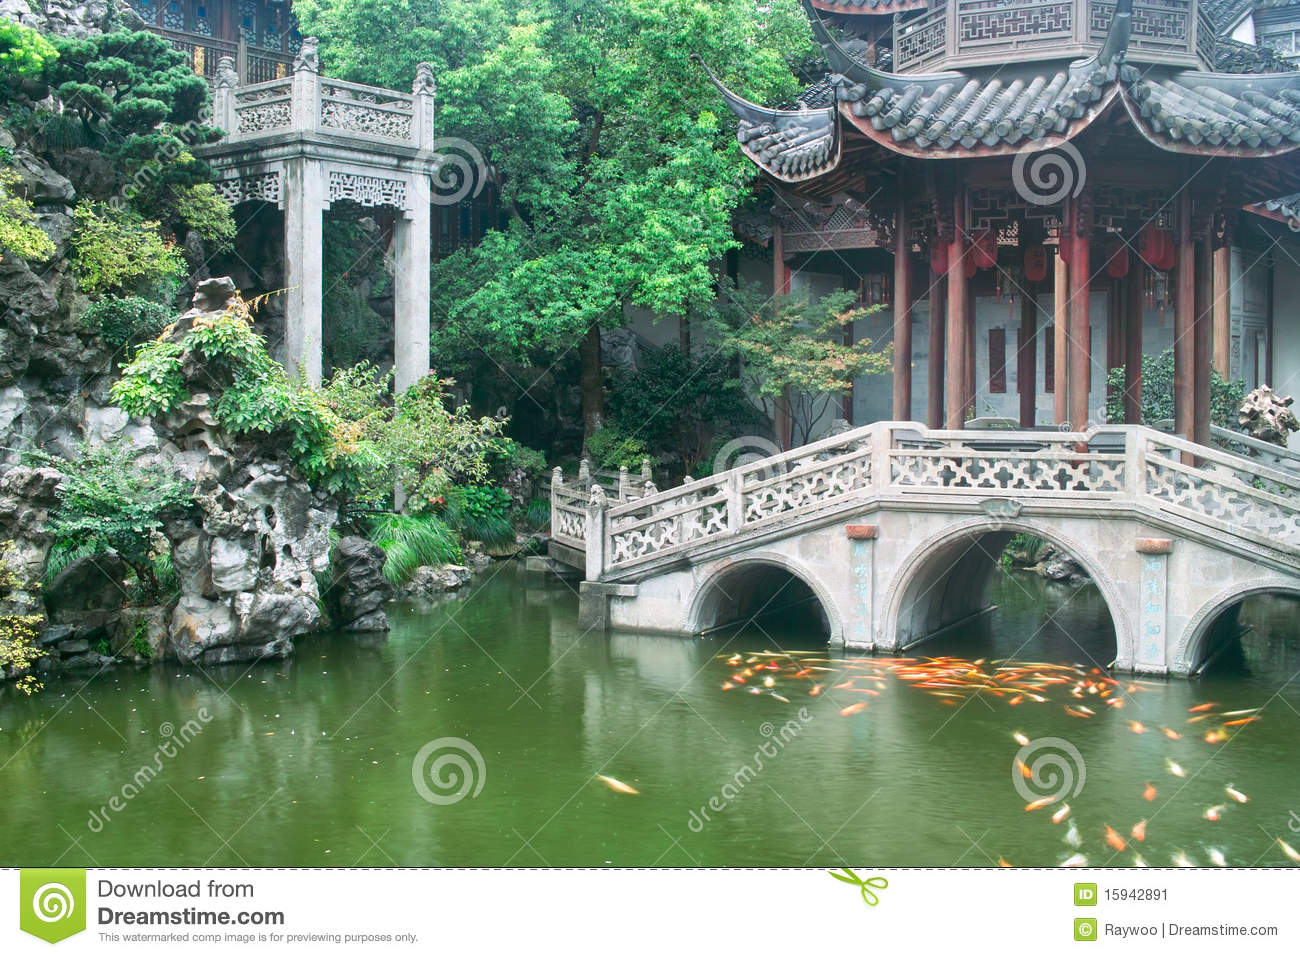 Jardin chinois de type traditionnel image stock image for Jardin chinois